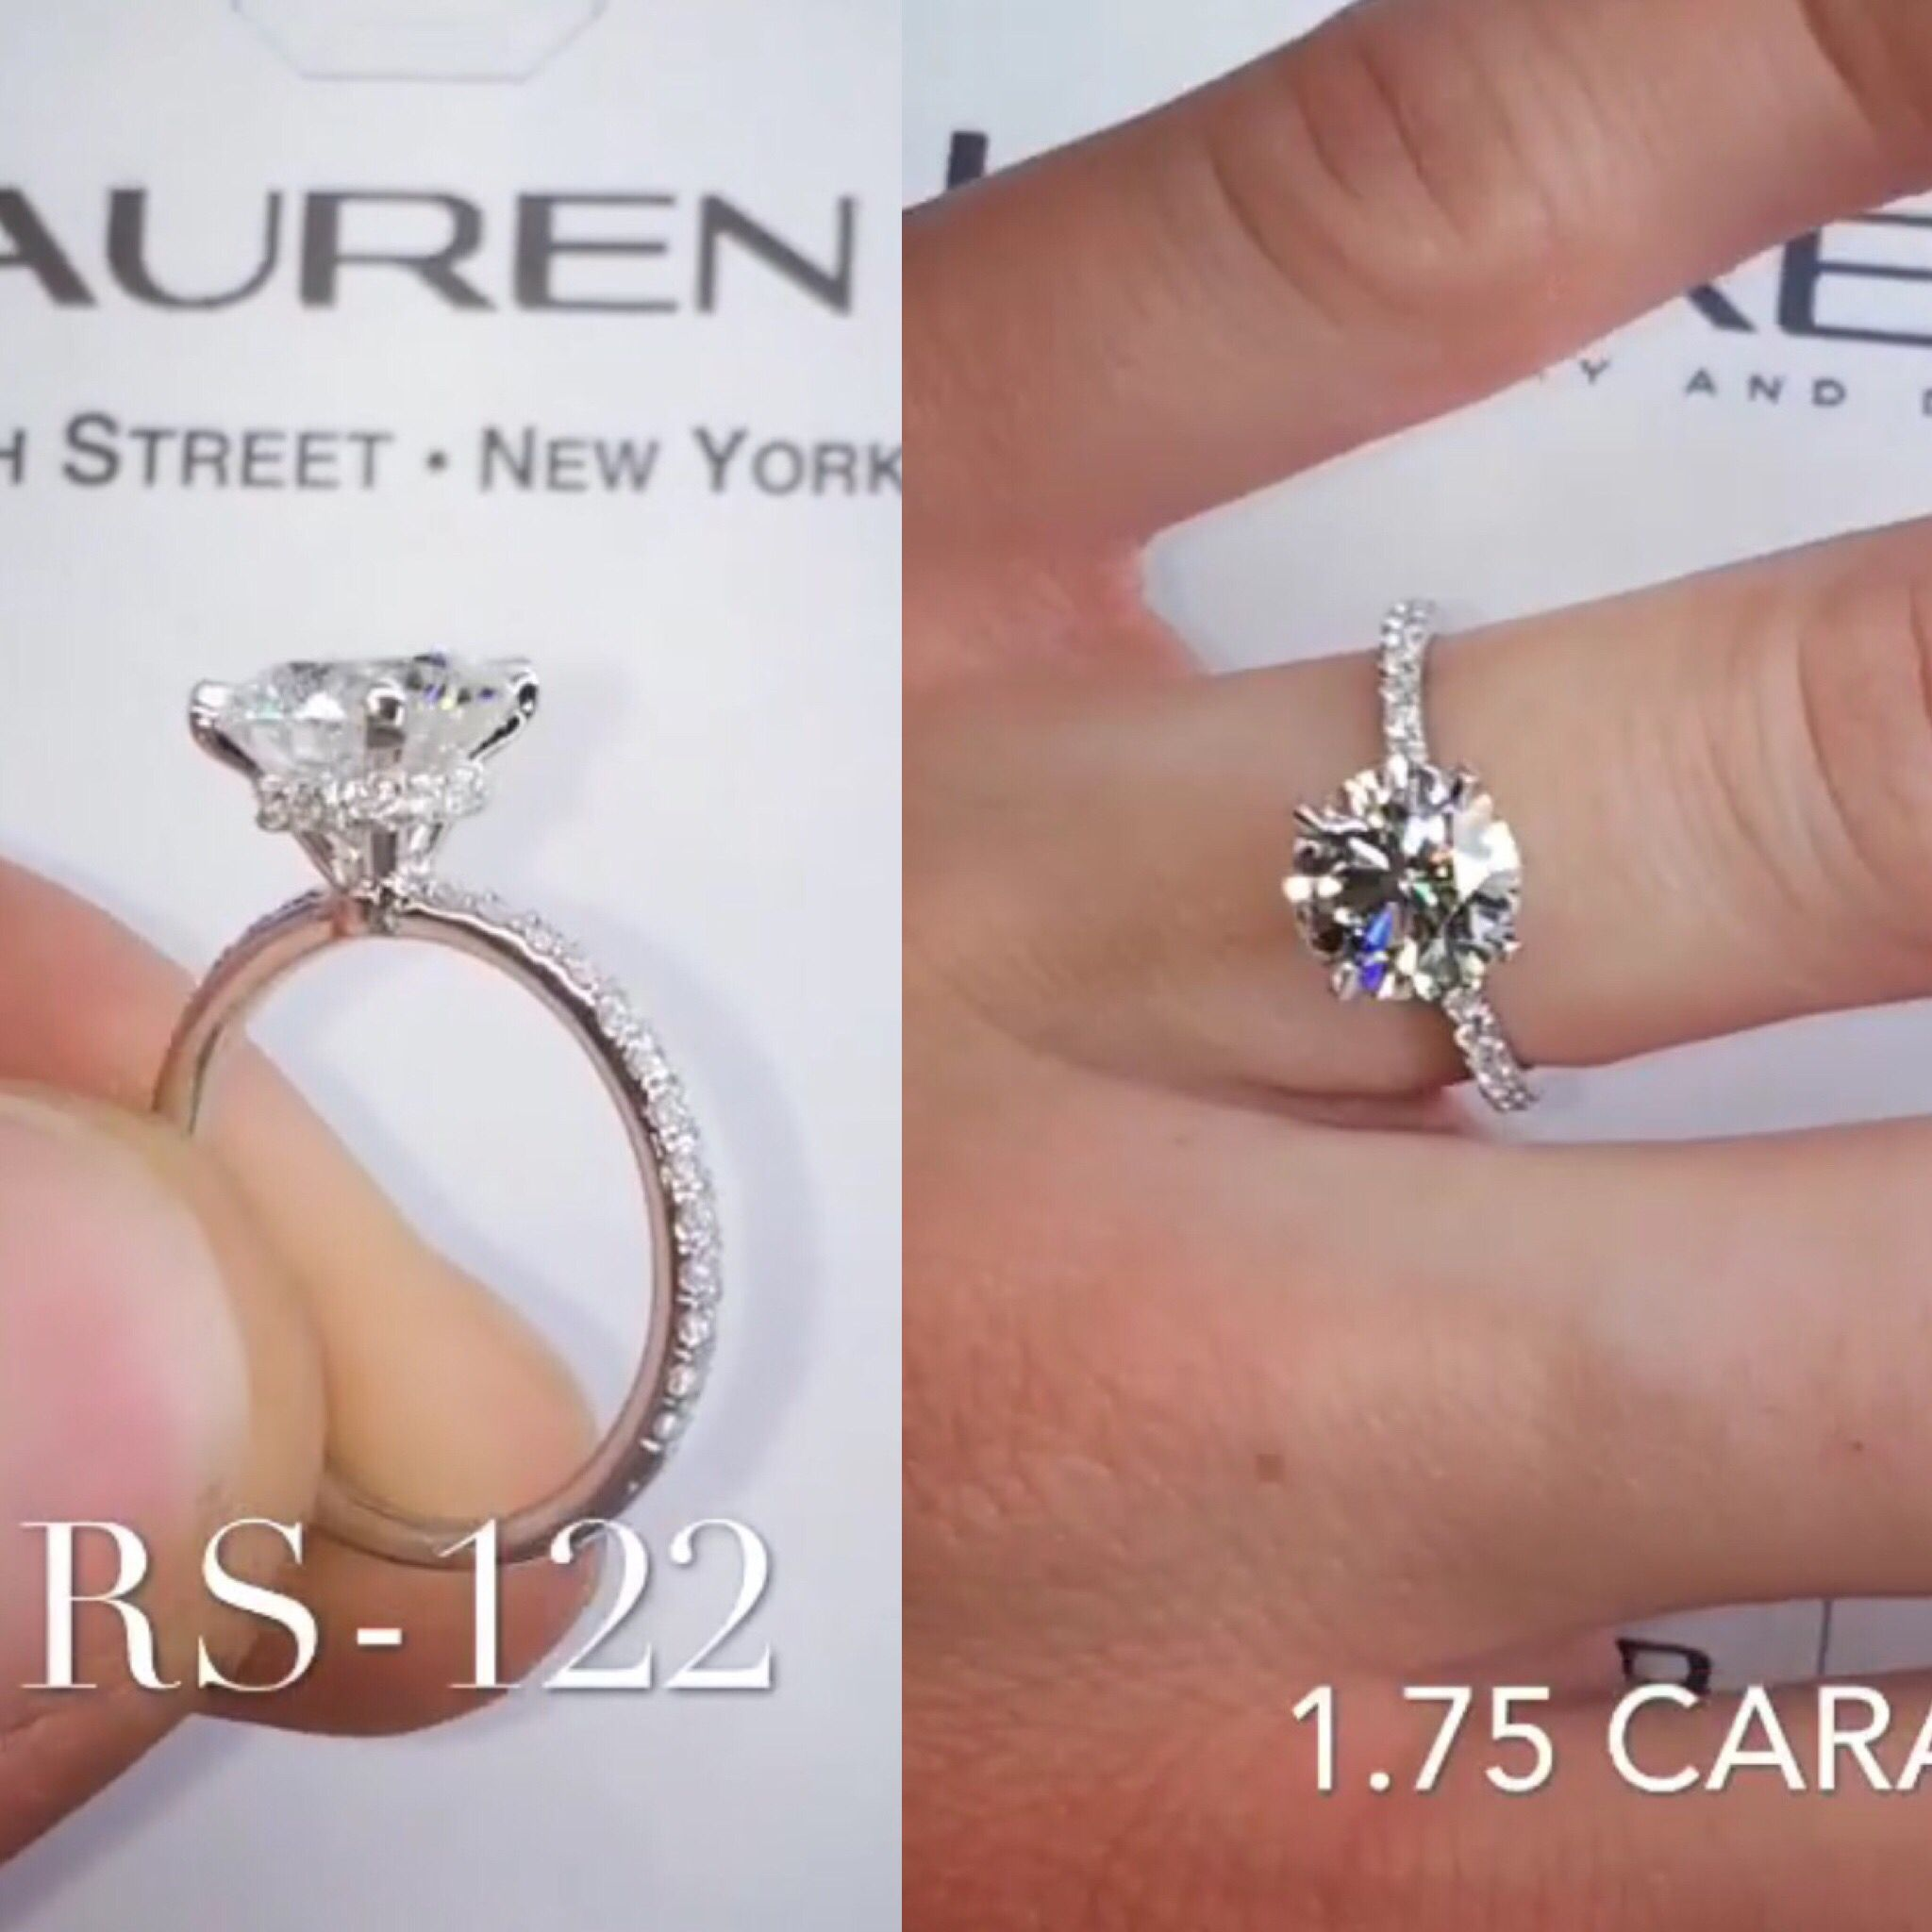 Laurenbjewelry 1 75 Carat Round Micropave Wrap Design Micro Pave Engagement Rings Round Engagement Rings Antique Engagement Rings